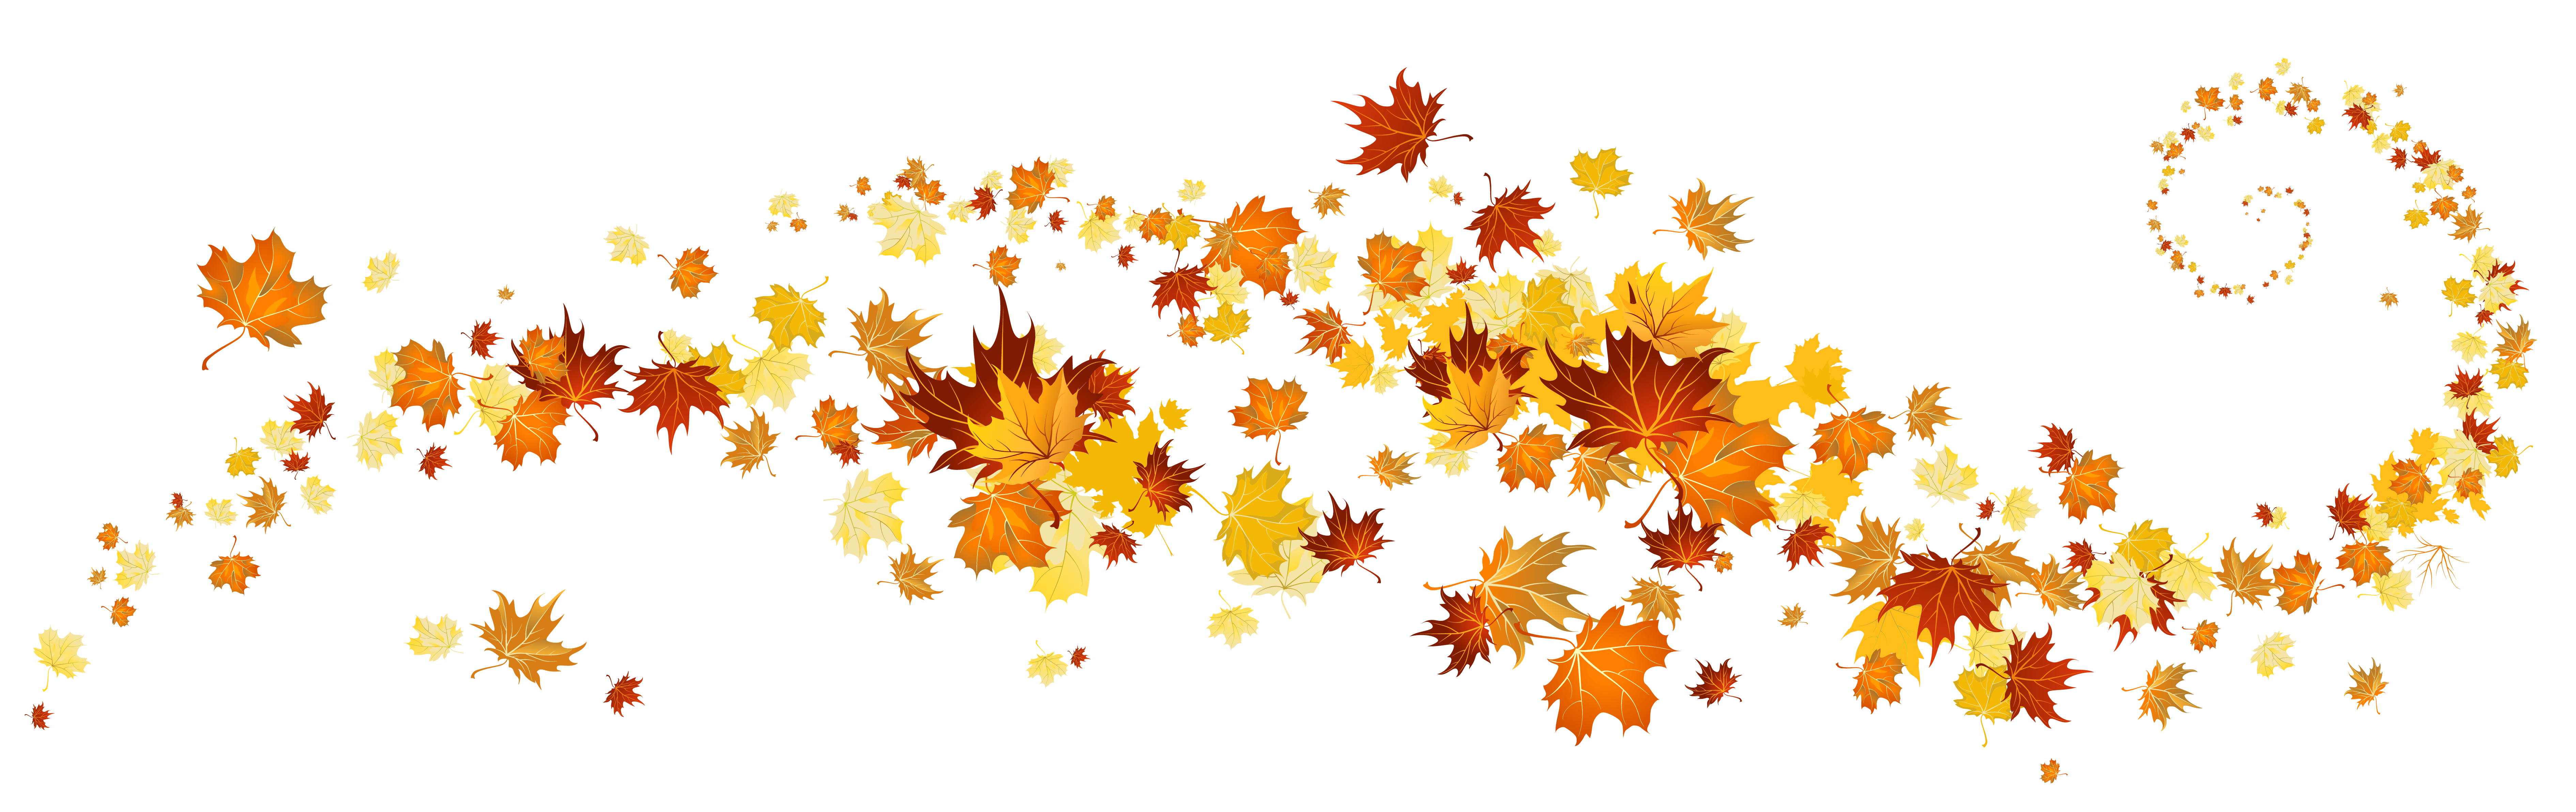 Autumn Fall Leaves Fall Leaf Clip Art Ou-Autumn fall leaves fall leaf clip art outline free clipart images-3